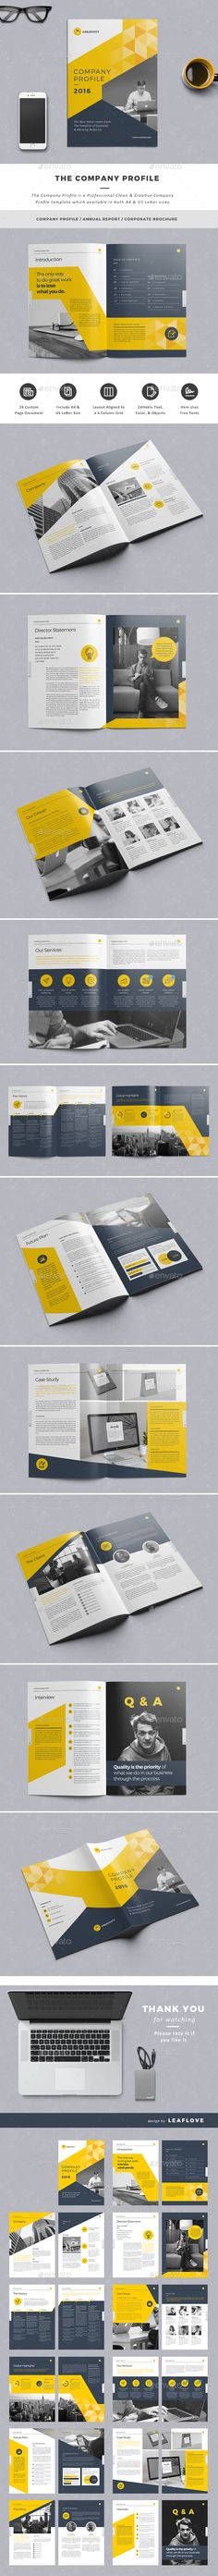 The Company Profile Design Template - Corporate Brochure Template InDesign INDD. Download here: https://graphicriver.net/item/the-company-profile/14207058?ref=yinkira